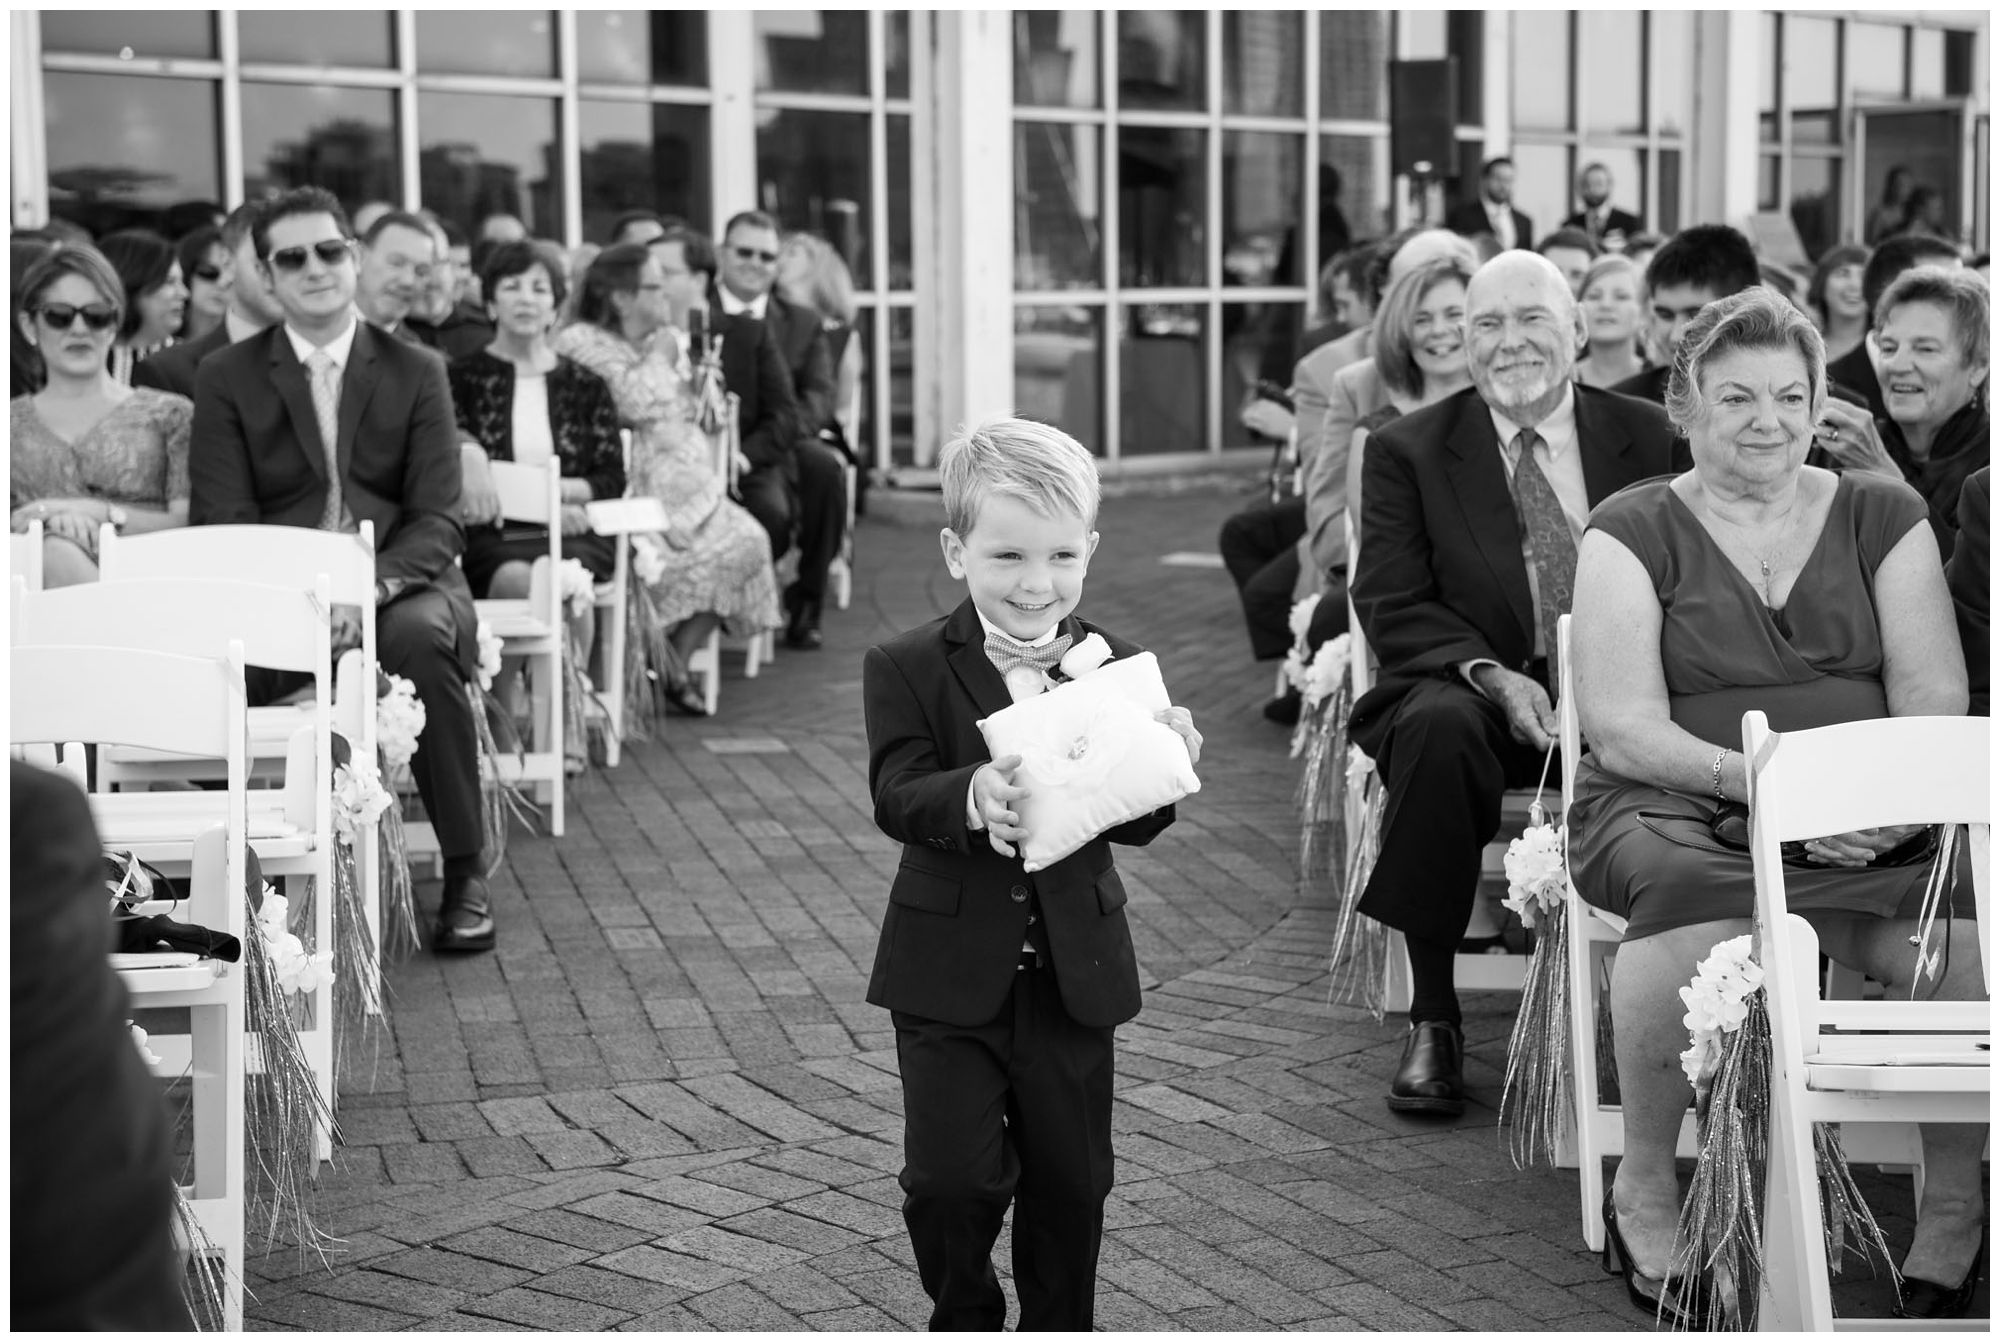 Ring bearer in harbor wedding at Baltimore Museum of Industry